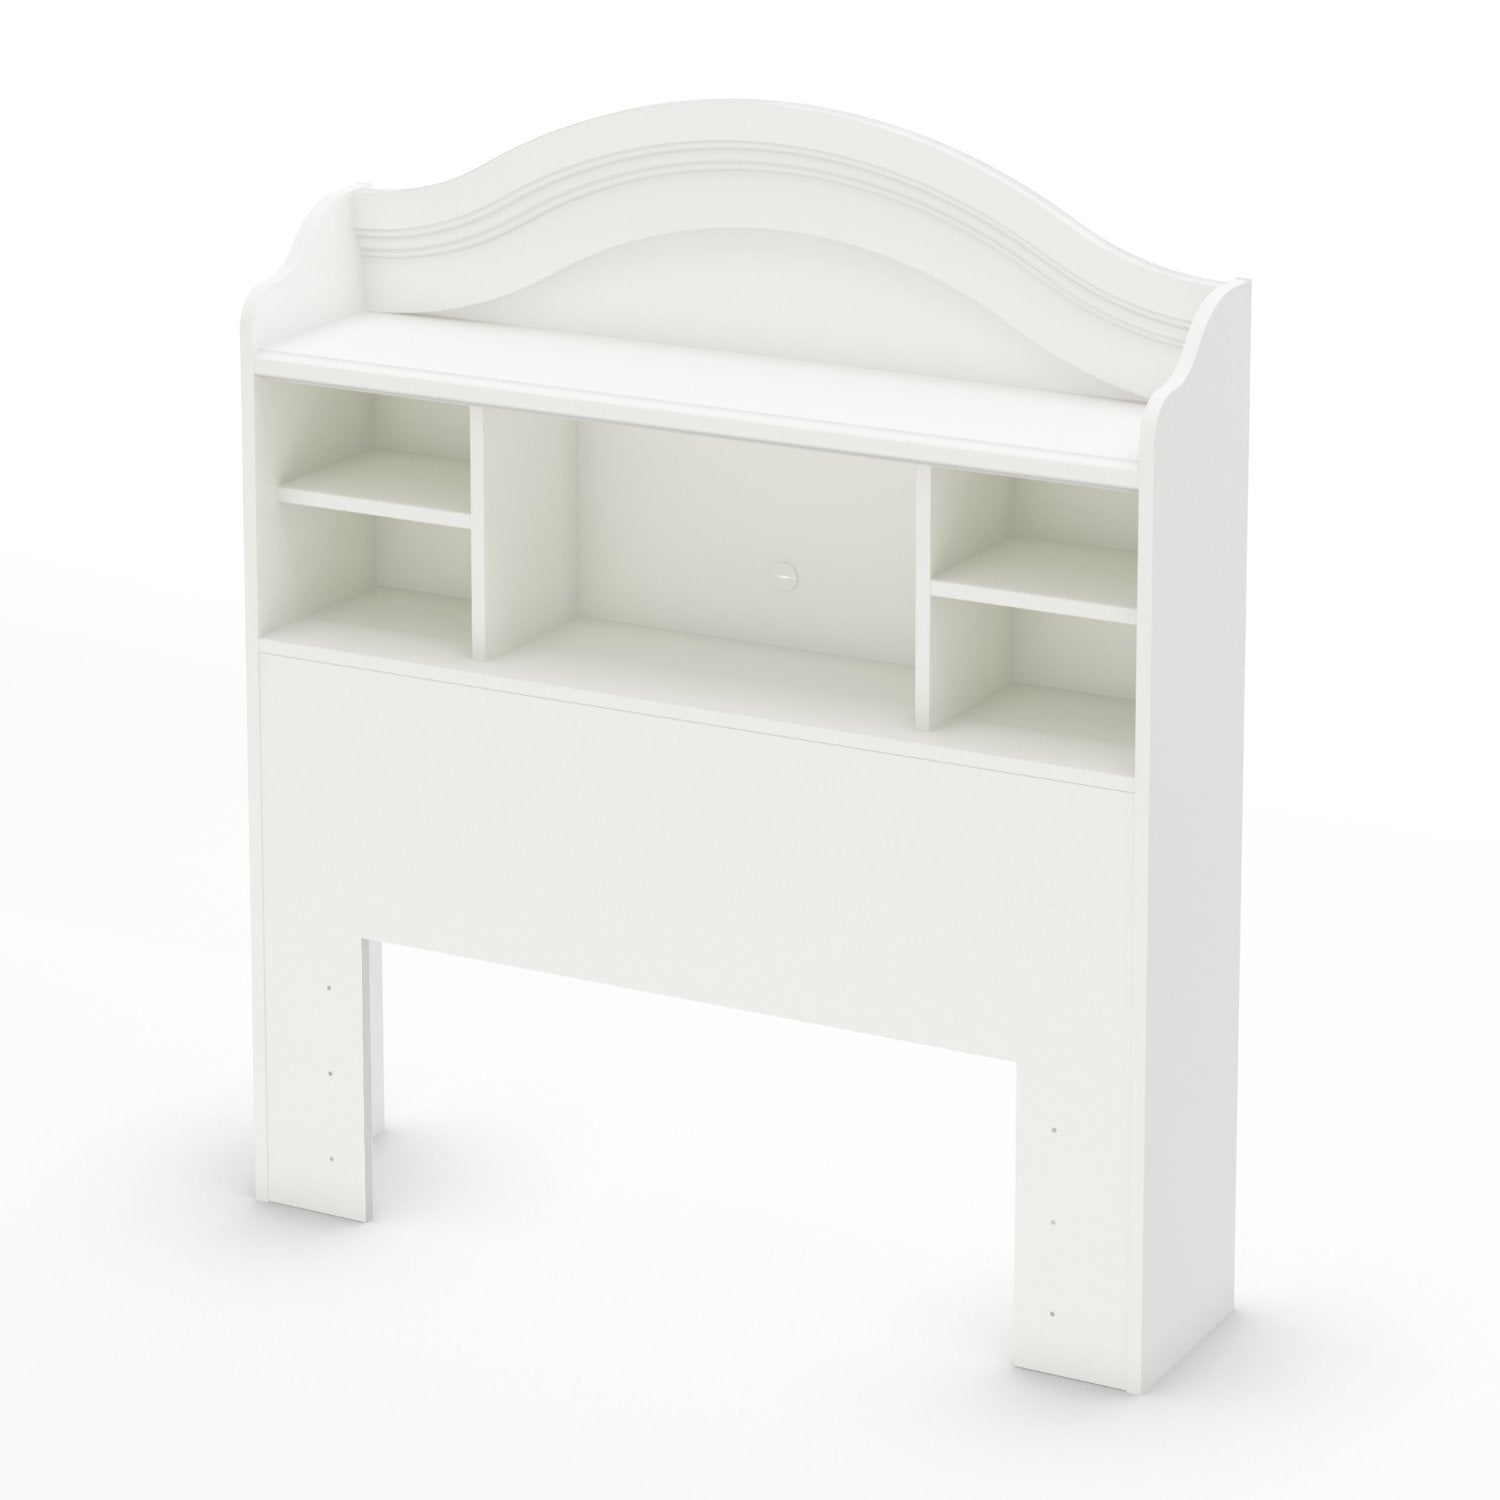 Twin size Arched Bookcase Headboard in White Wood Finish